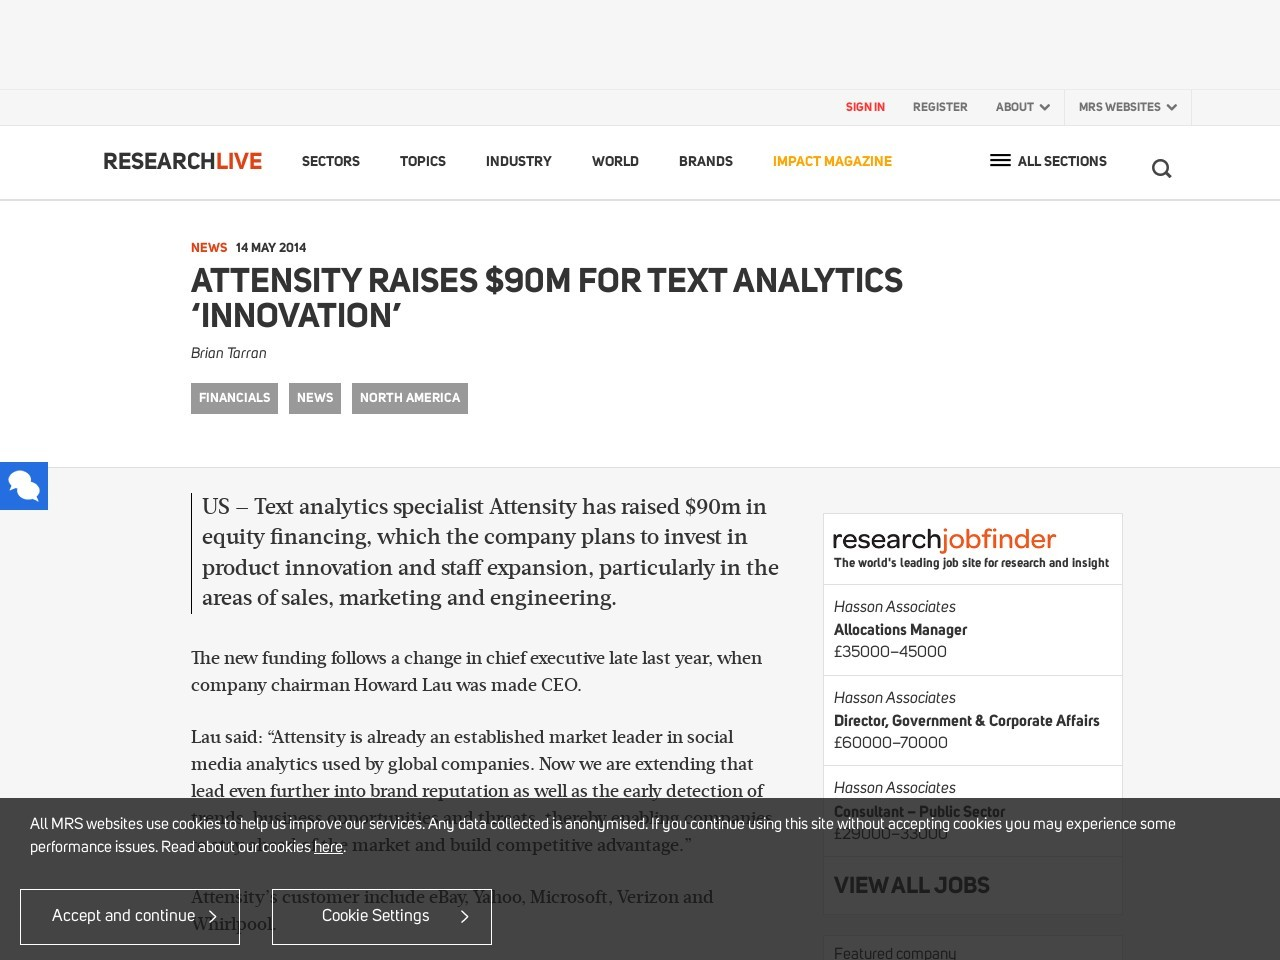 Attensity raises $90m for text analytics 'innovation'